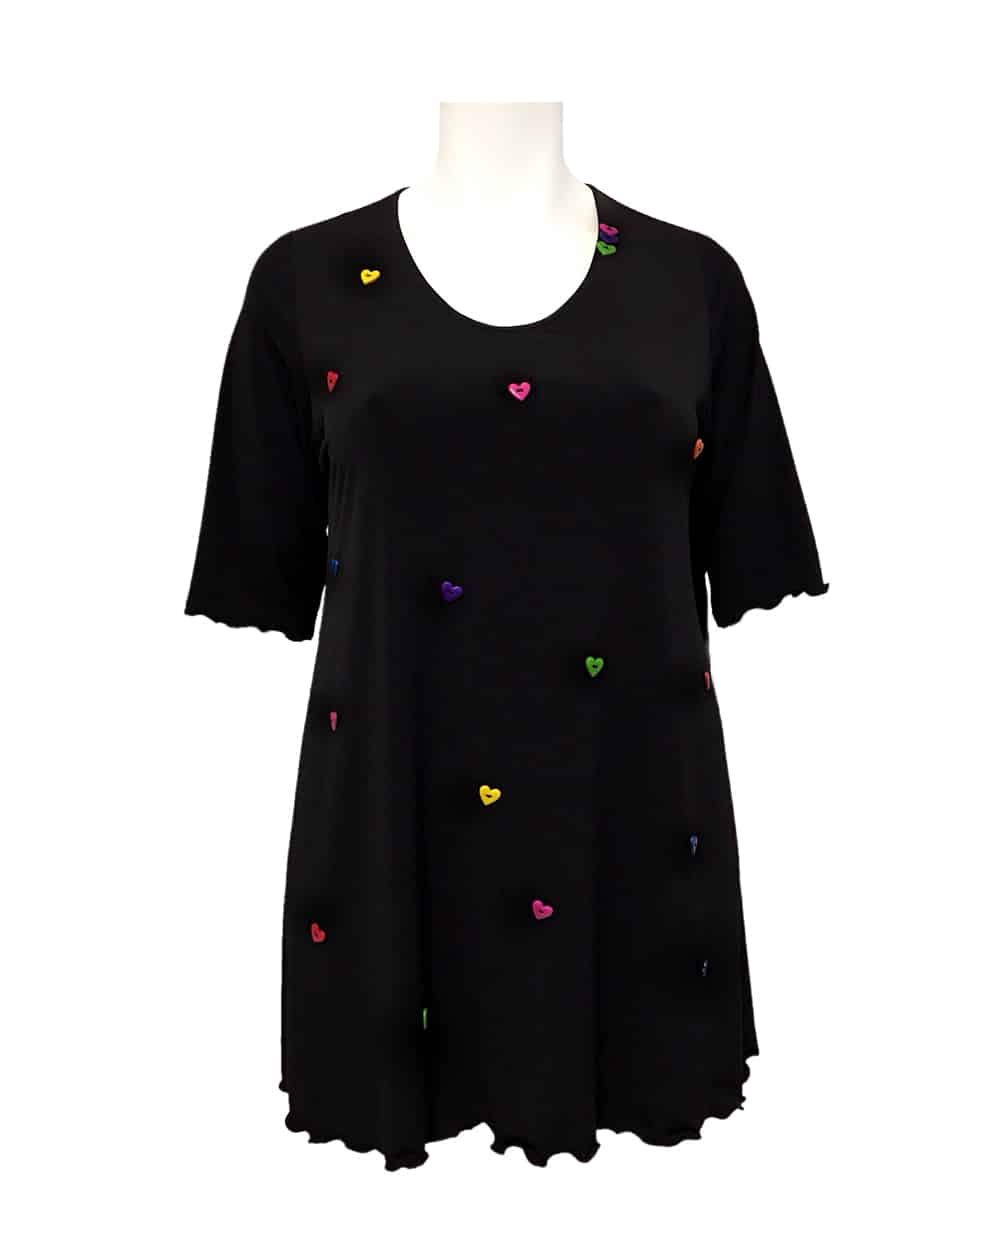 Hayley-Joy-Miracle-Top-Heart-Button-Detail-Multi-Colour-1000